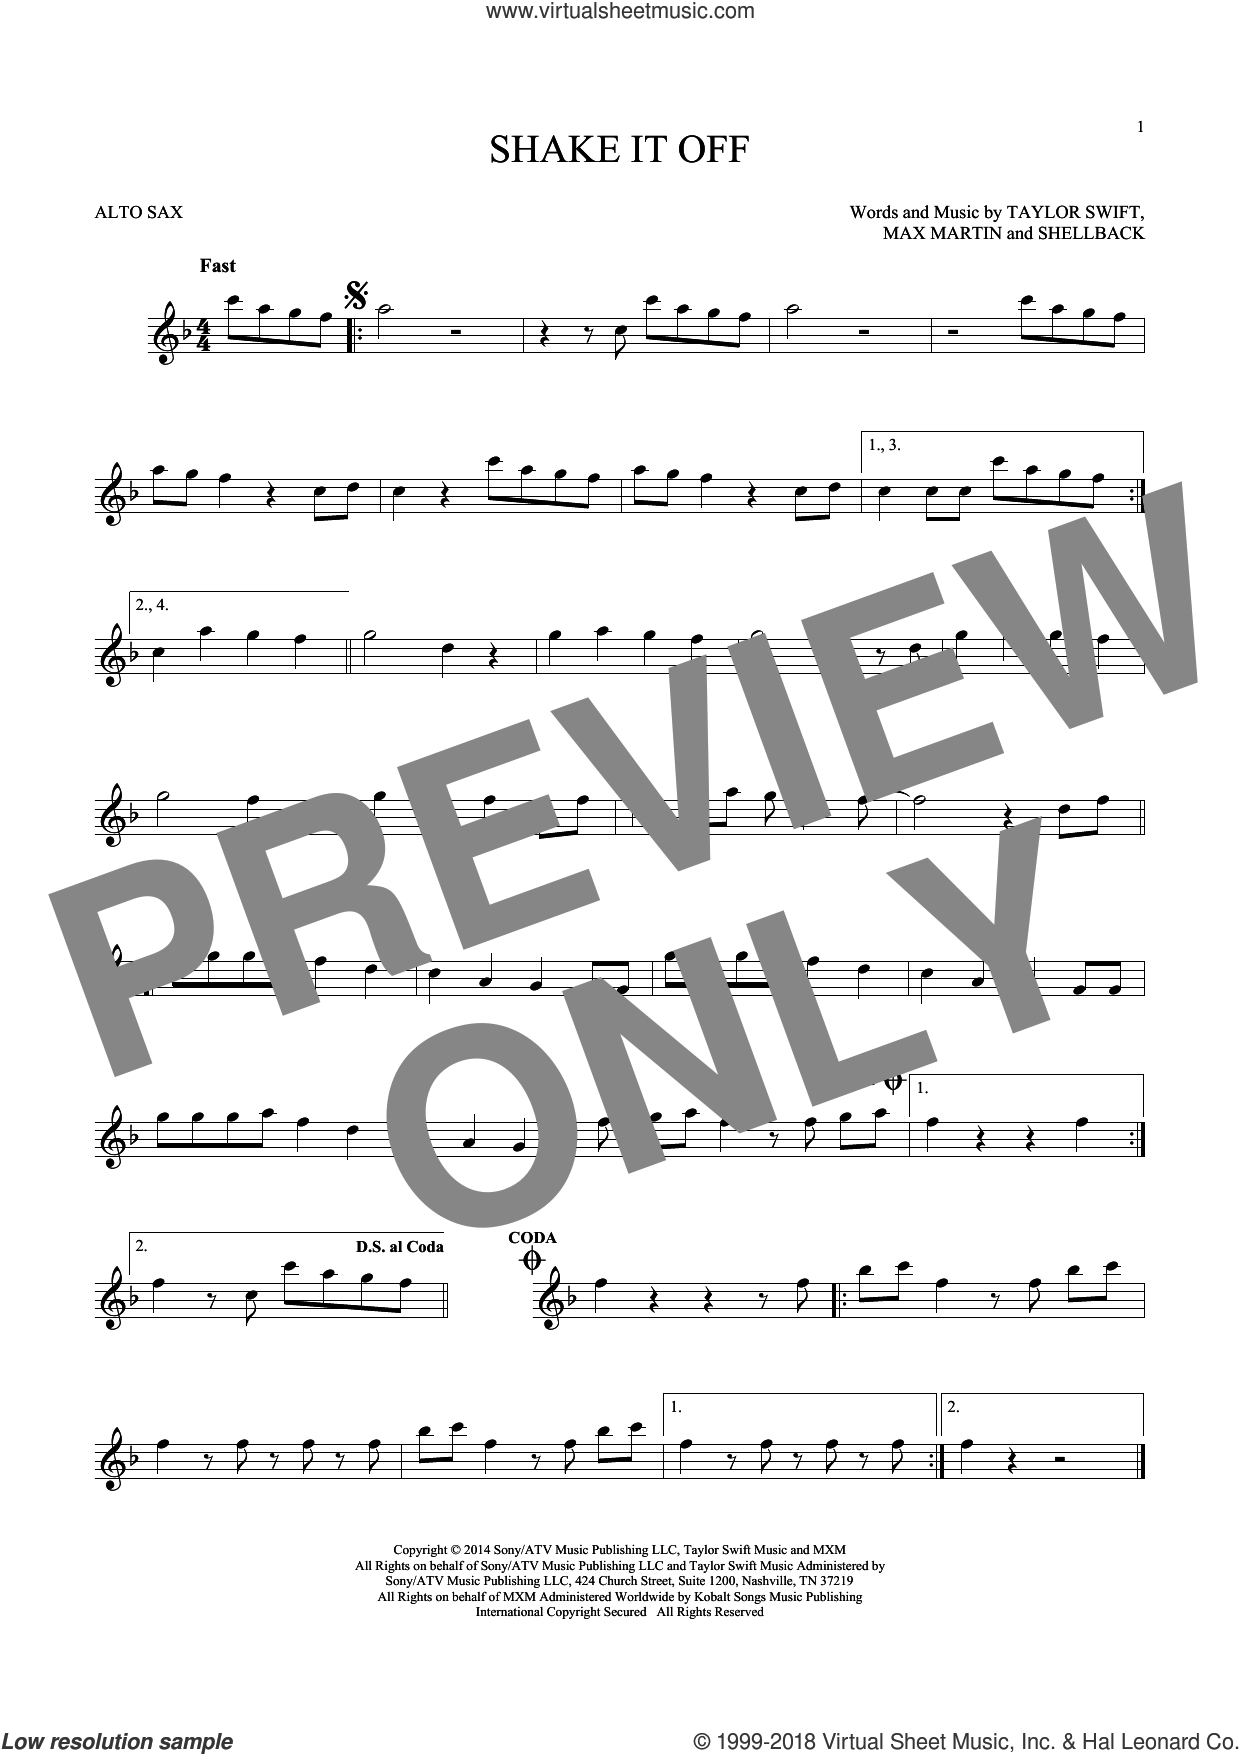 Shake It Off sheet music for alto saxophone solo ( Sax) by Shellback, Johan Schuster, Max Martin and Taylor Swift. Score Image Preview.